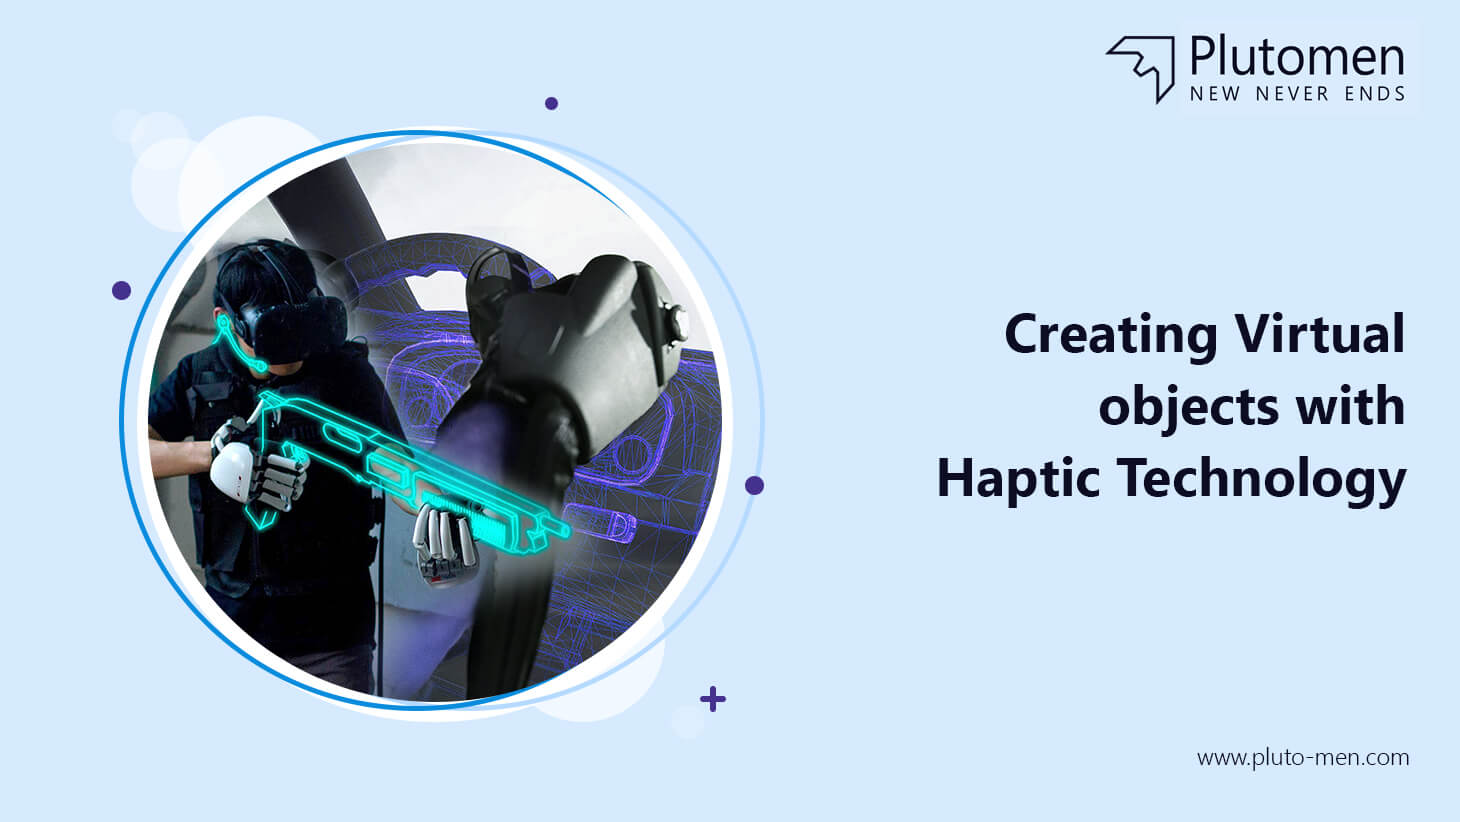 Creating Virtual Objects with Haptic Technology